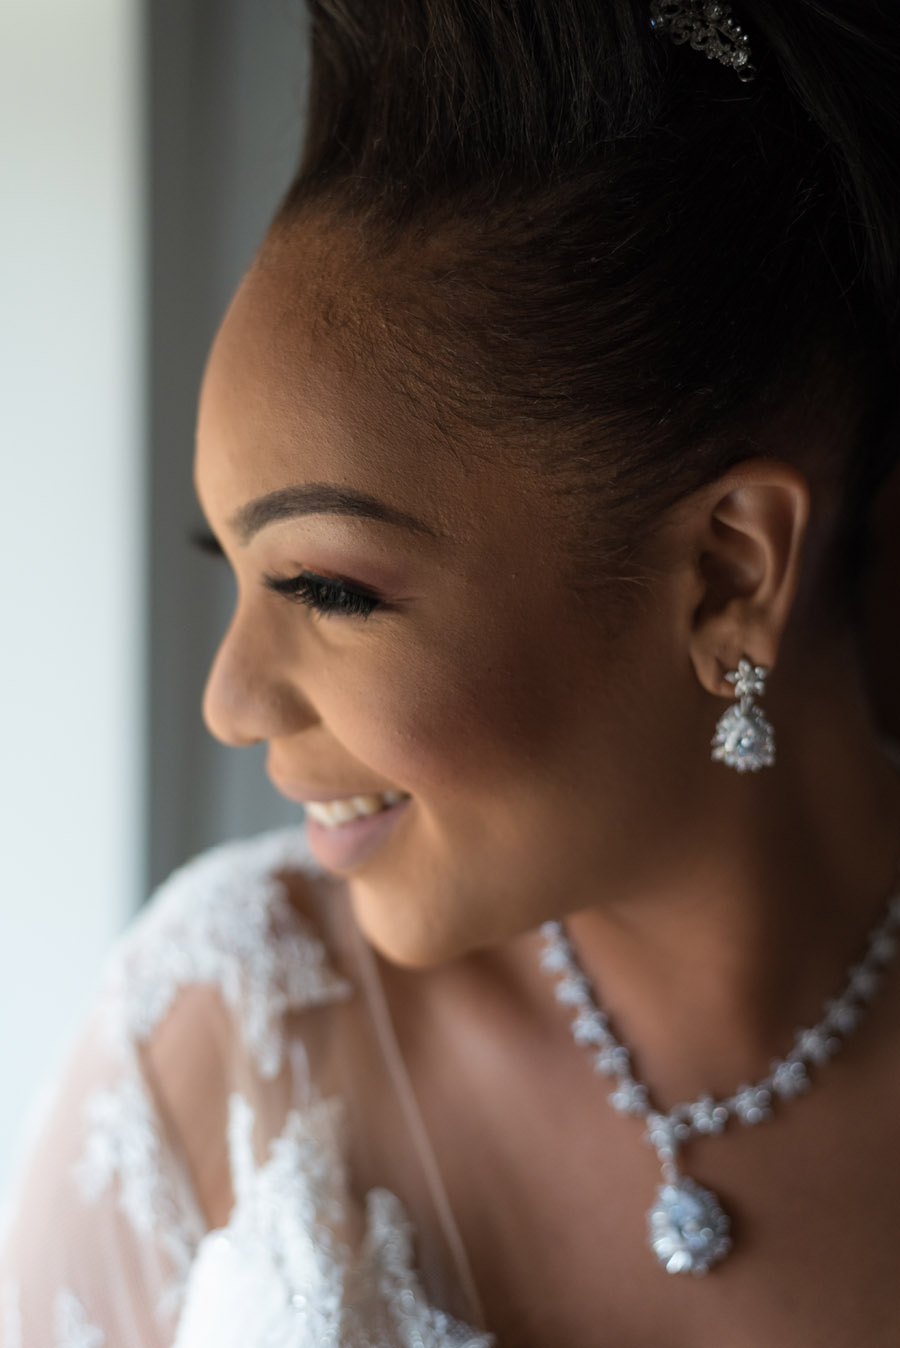 Chantel & Andrew's chic, modern and timeless wedding at Devonshire Terrace, with Carla Thomas Photography (11)